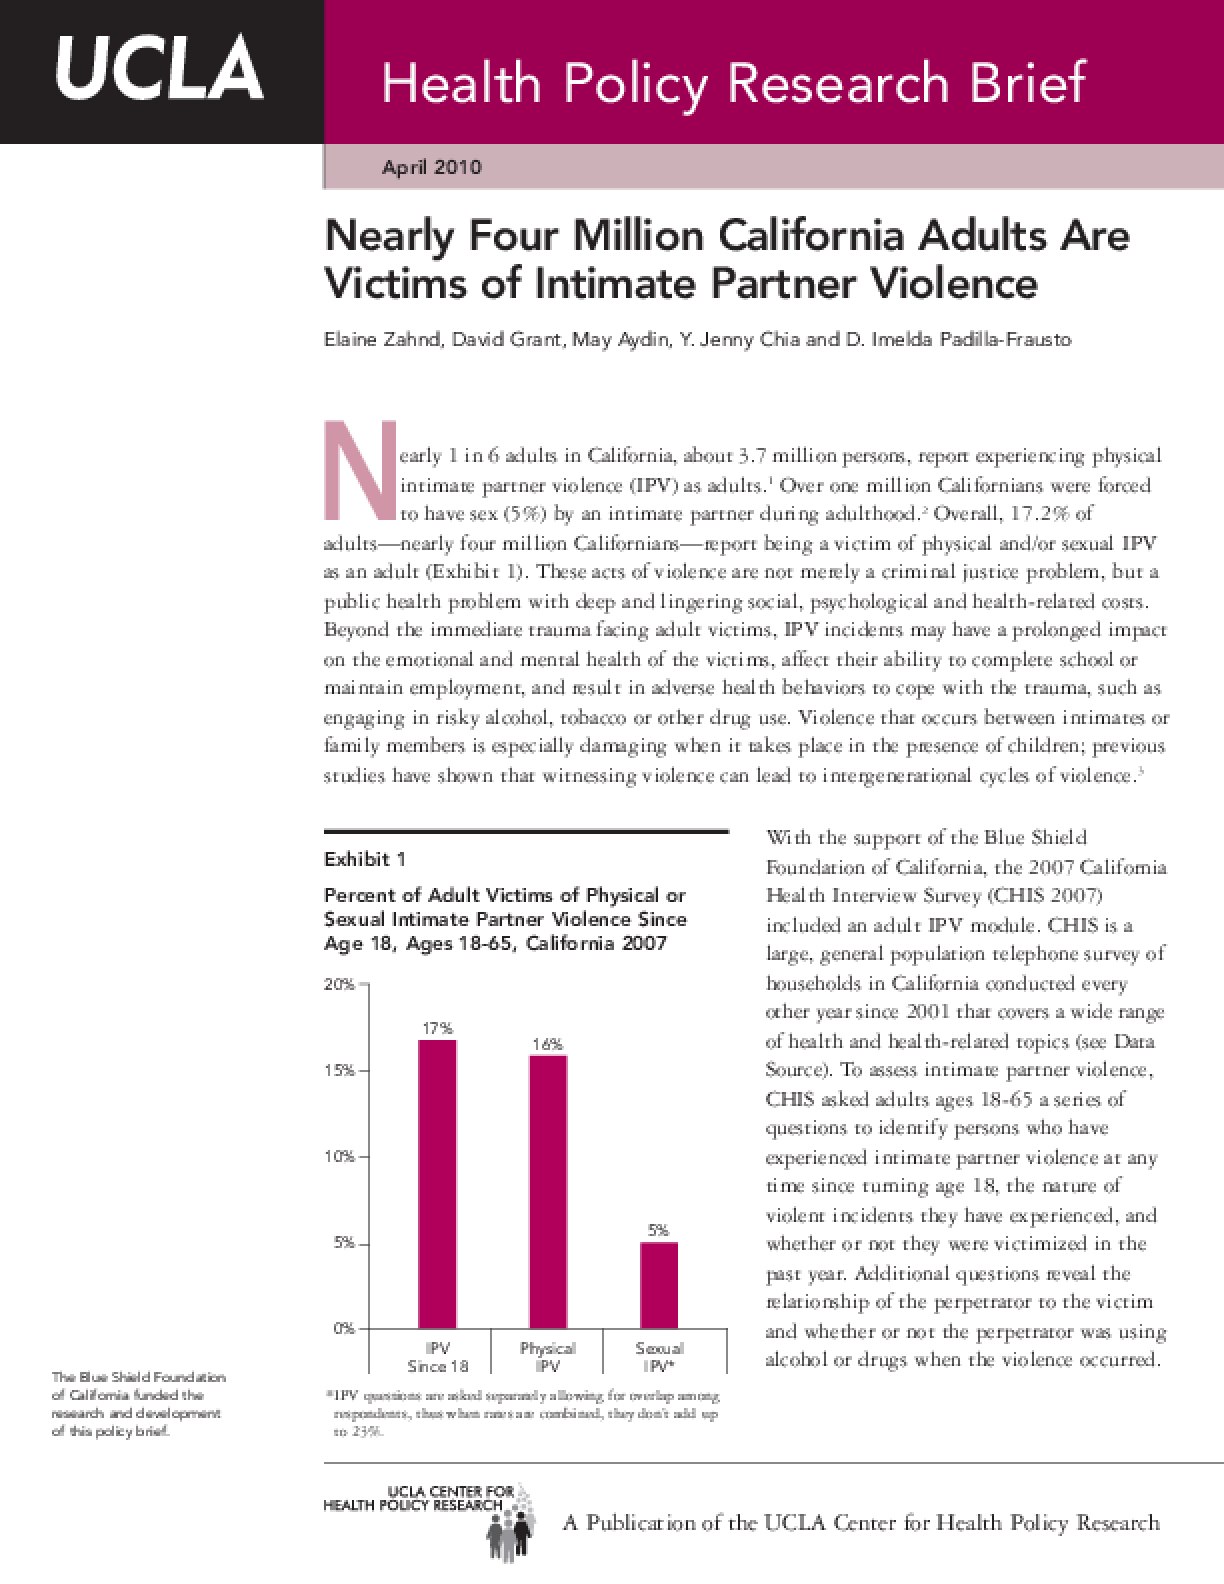 Nearly Four Million California Adults Are Victims of Intimate Partner Violence